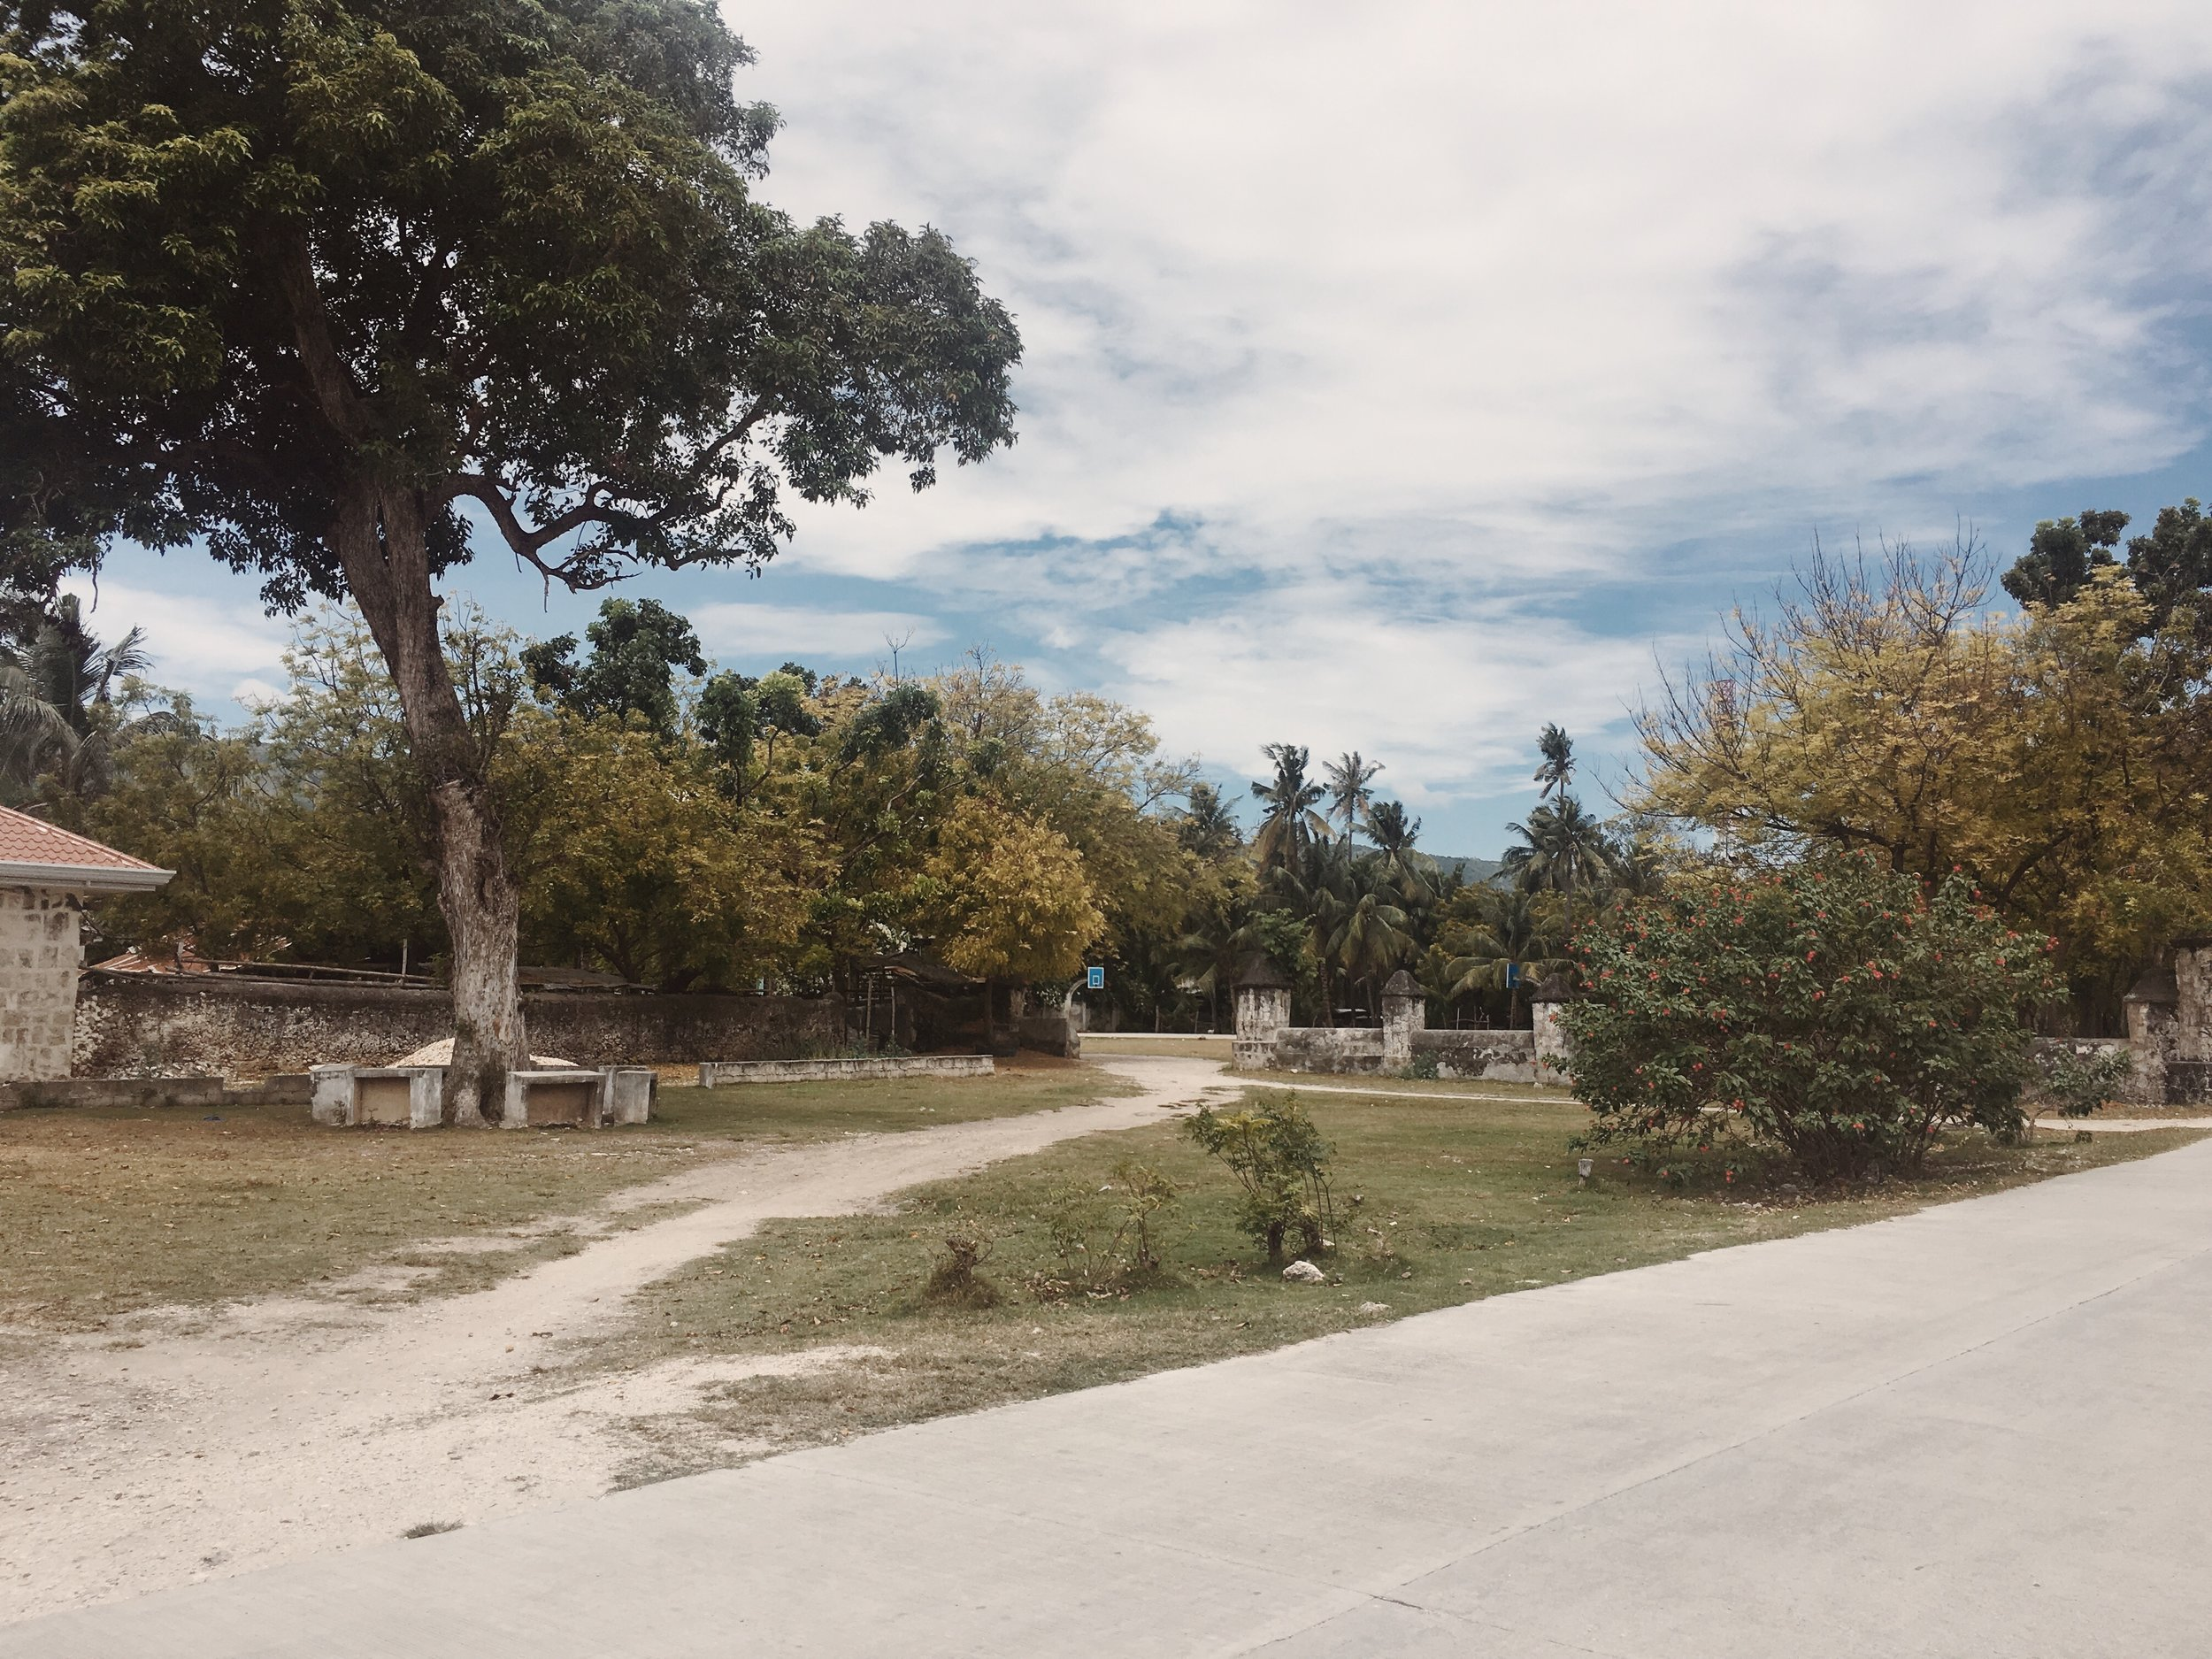 A Visit To Cebu's Historical Place: Cuartel and Baluarte 5